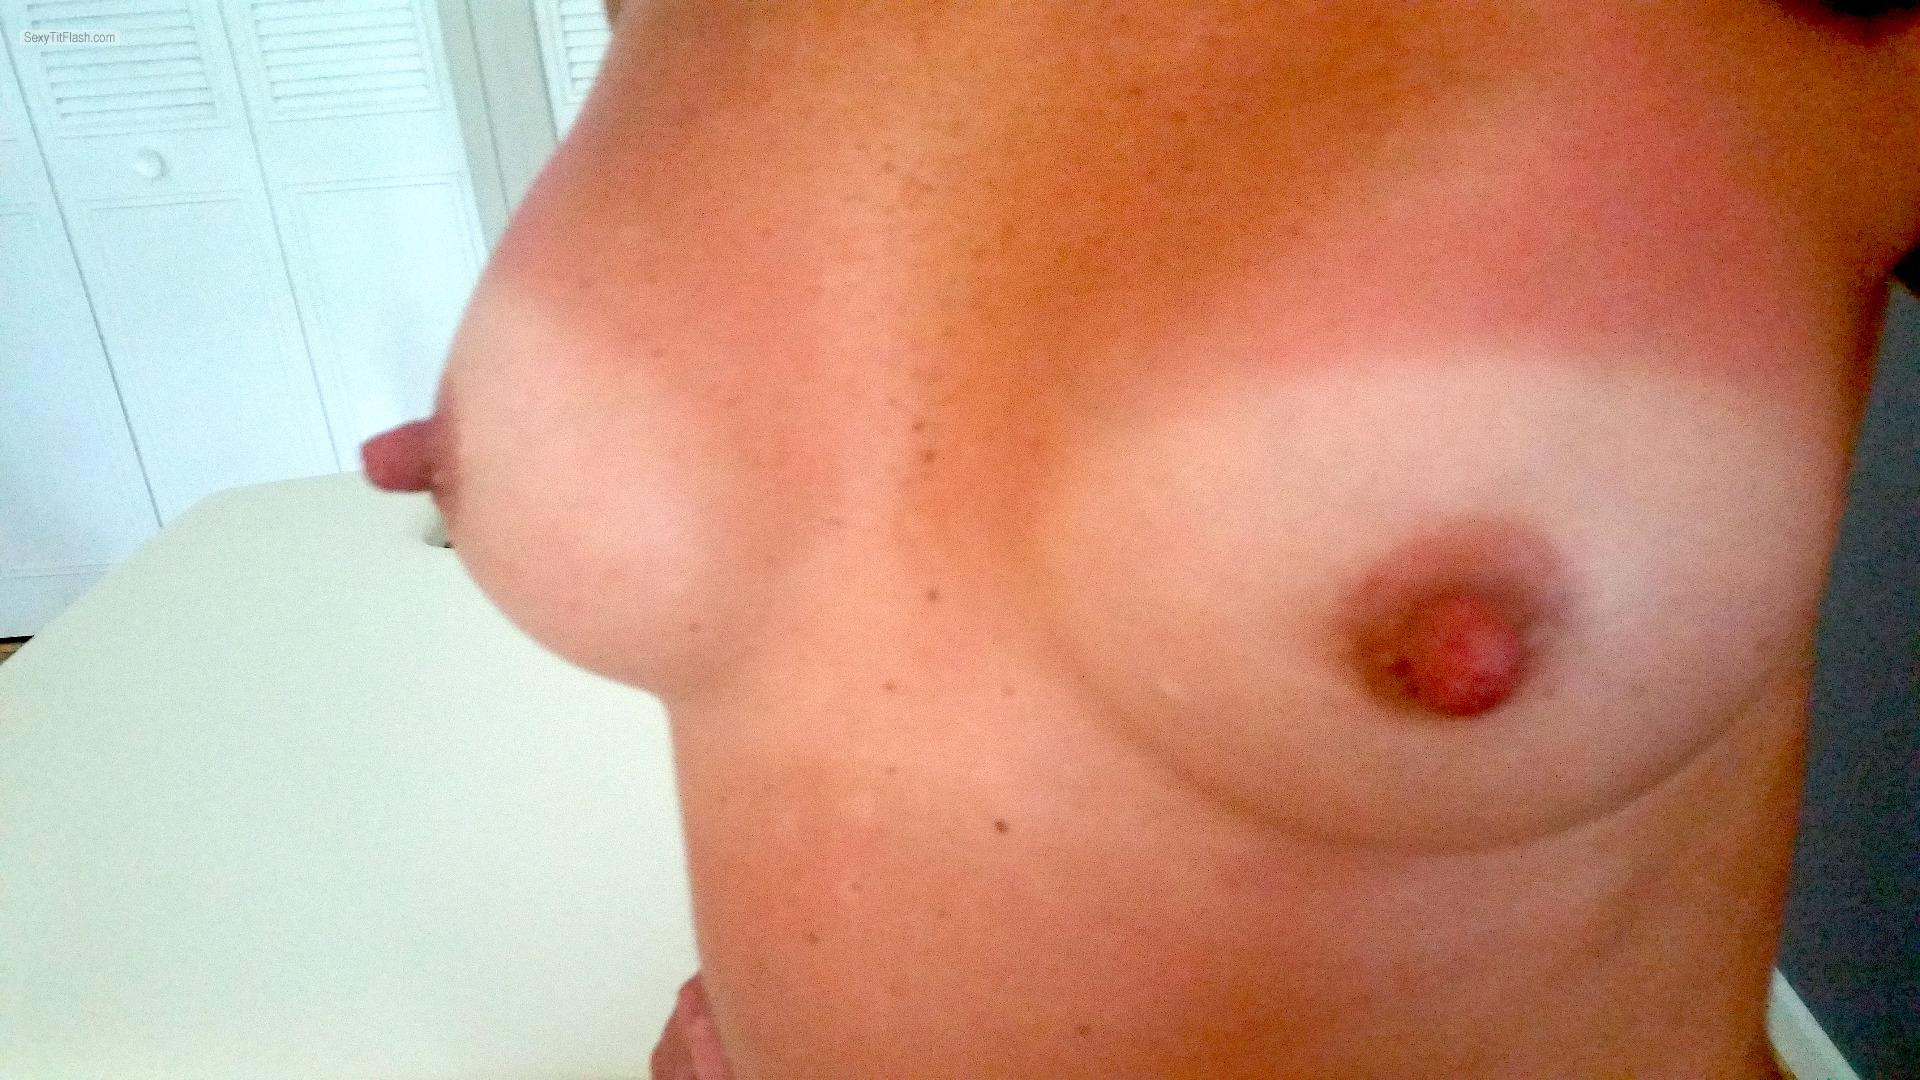 Tit Flash: My Tanlined Small Tits - Long Nipple Princess from United States